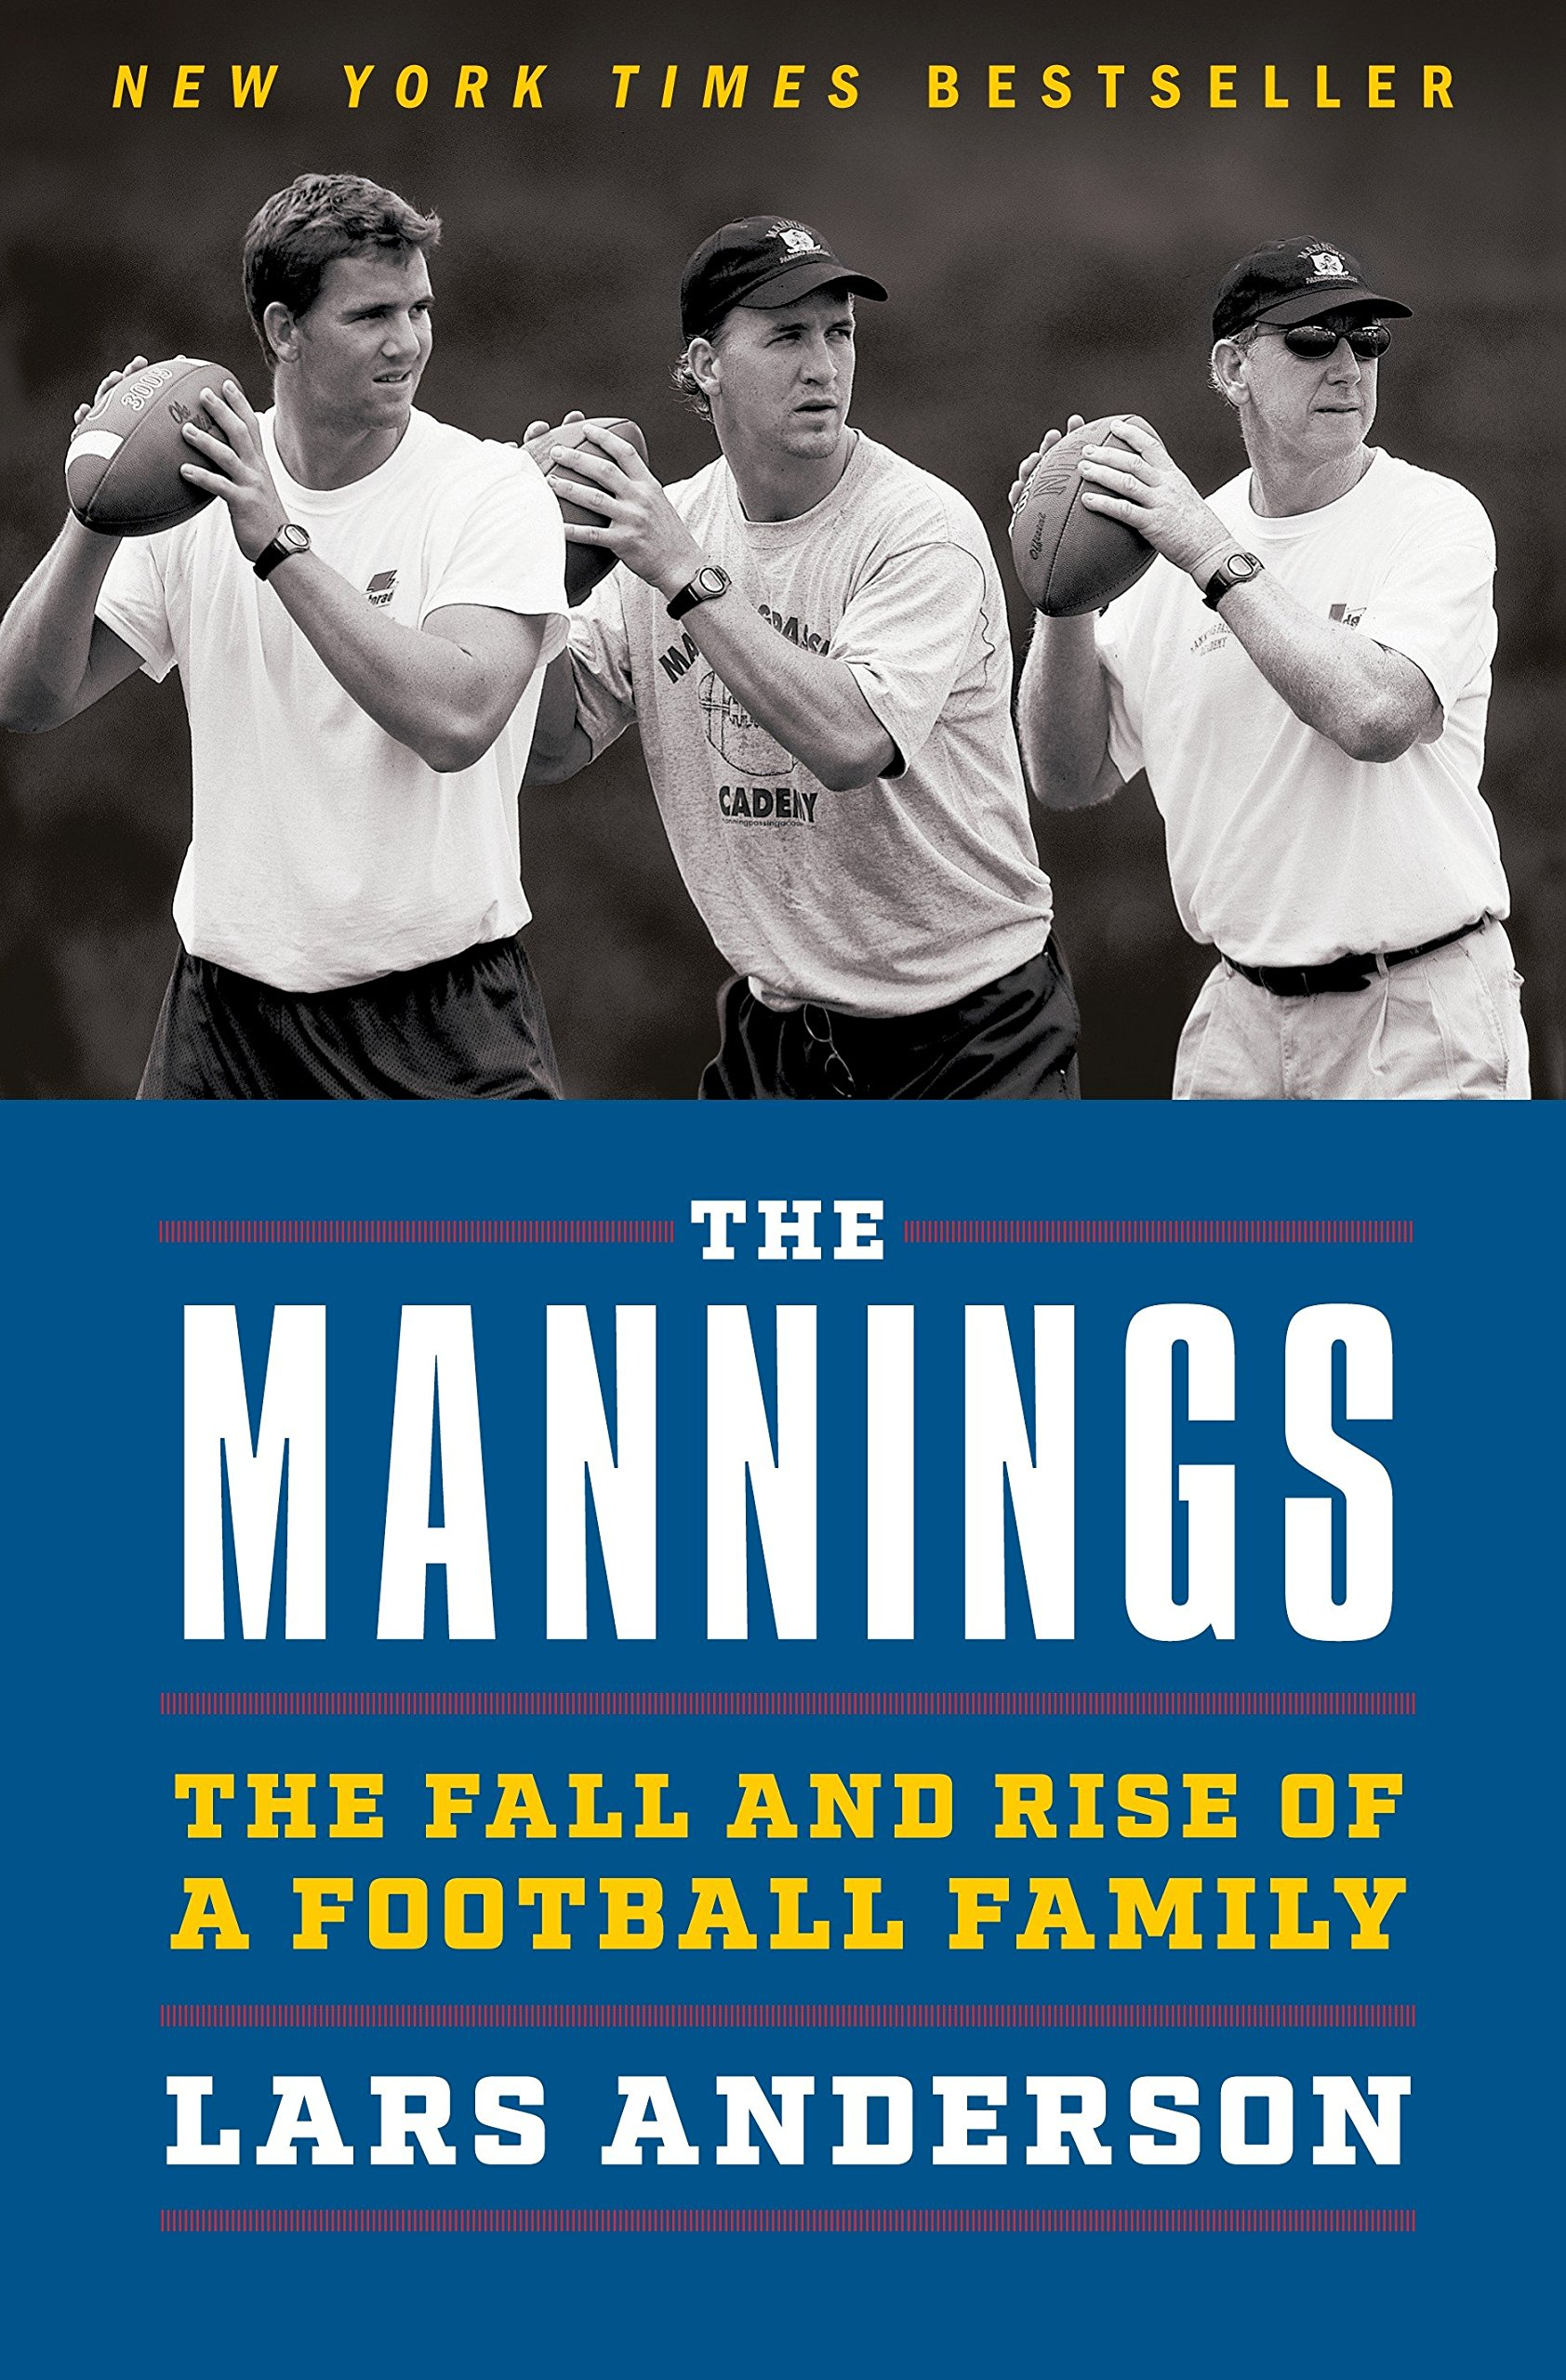 The Mannings: The Fall and Rise of a Football Family: Amazon.co.uk: Lars  Anderson: 9781101883822: Books